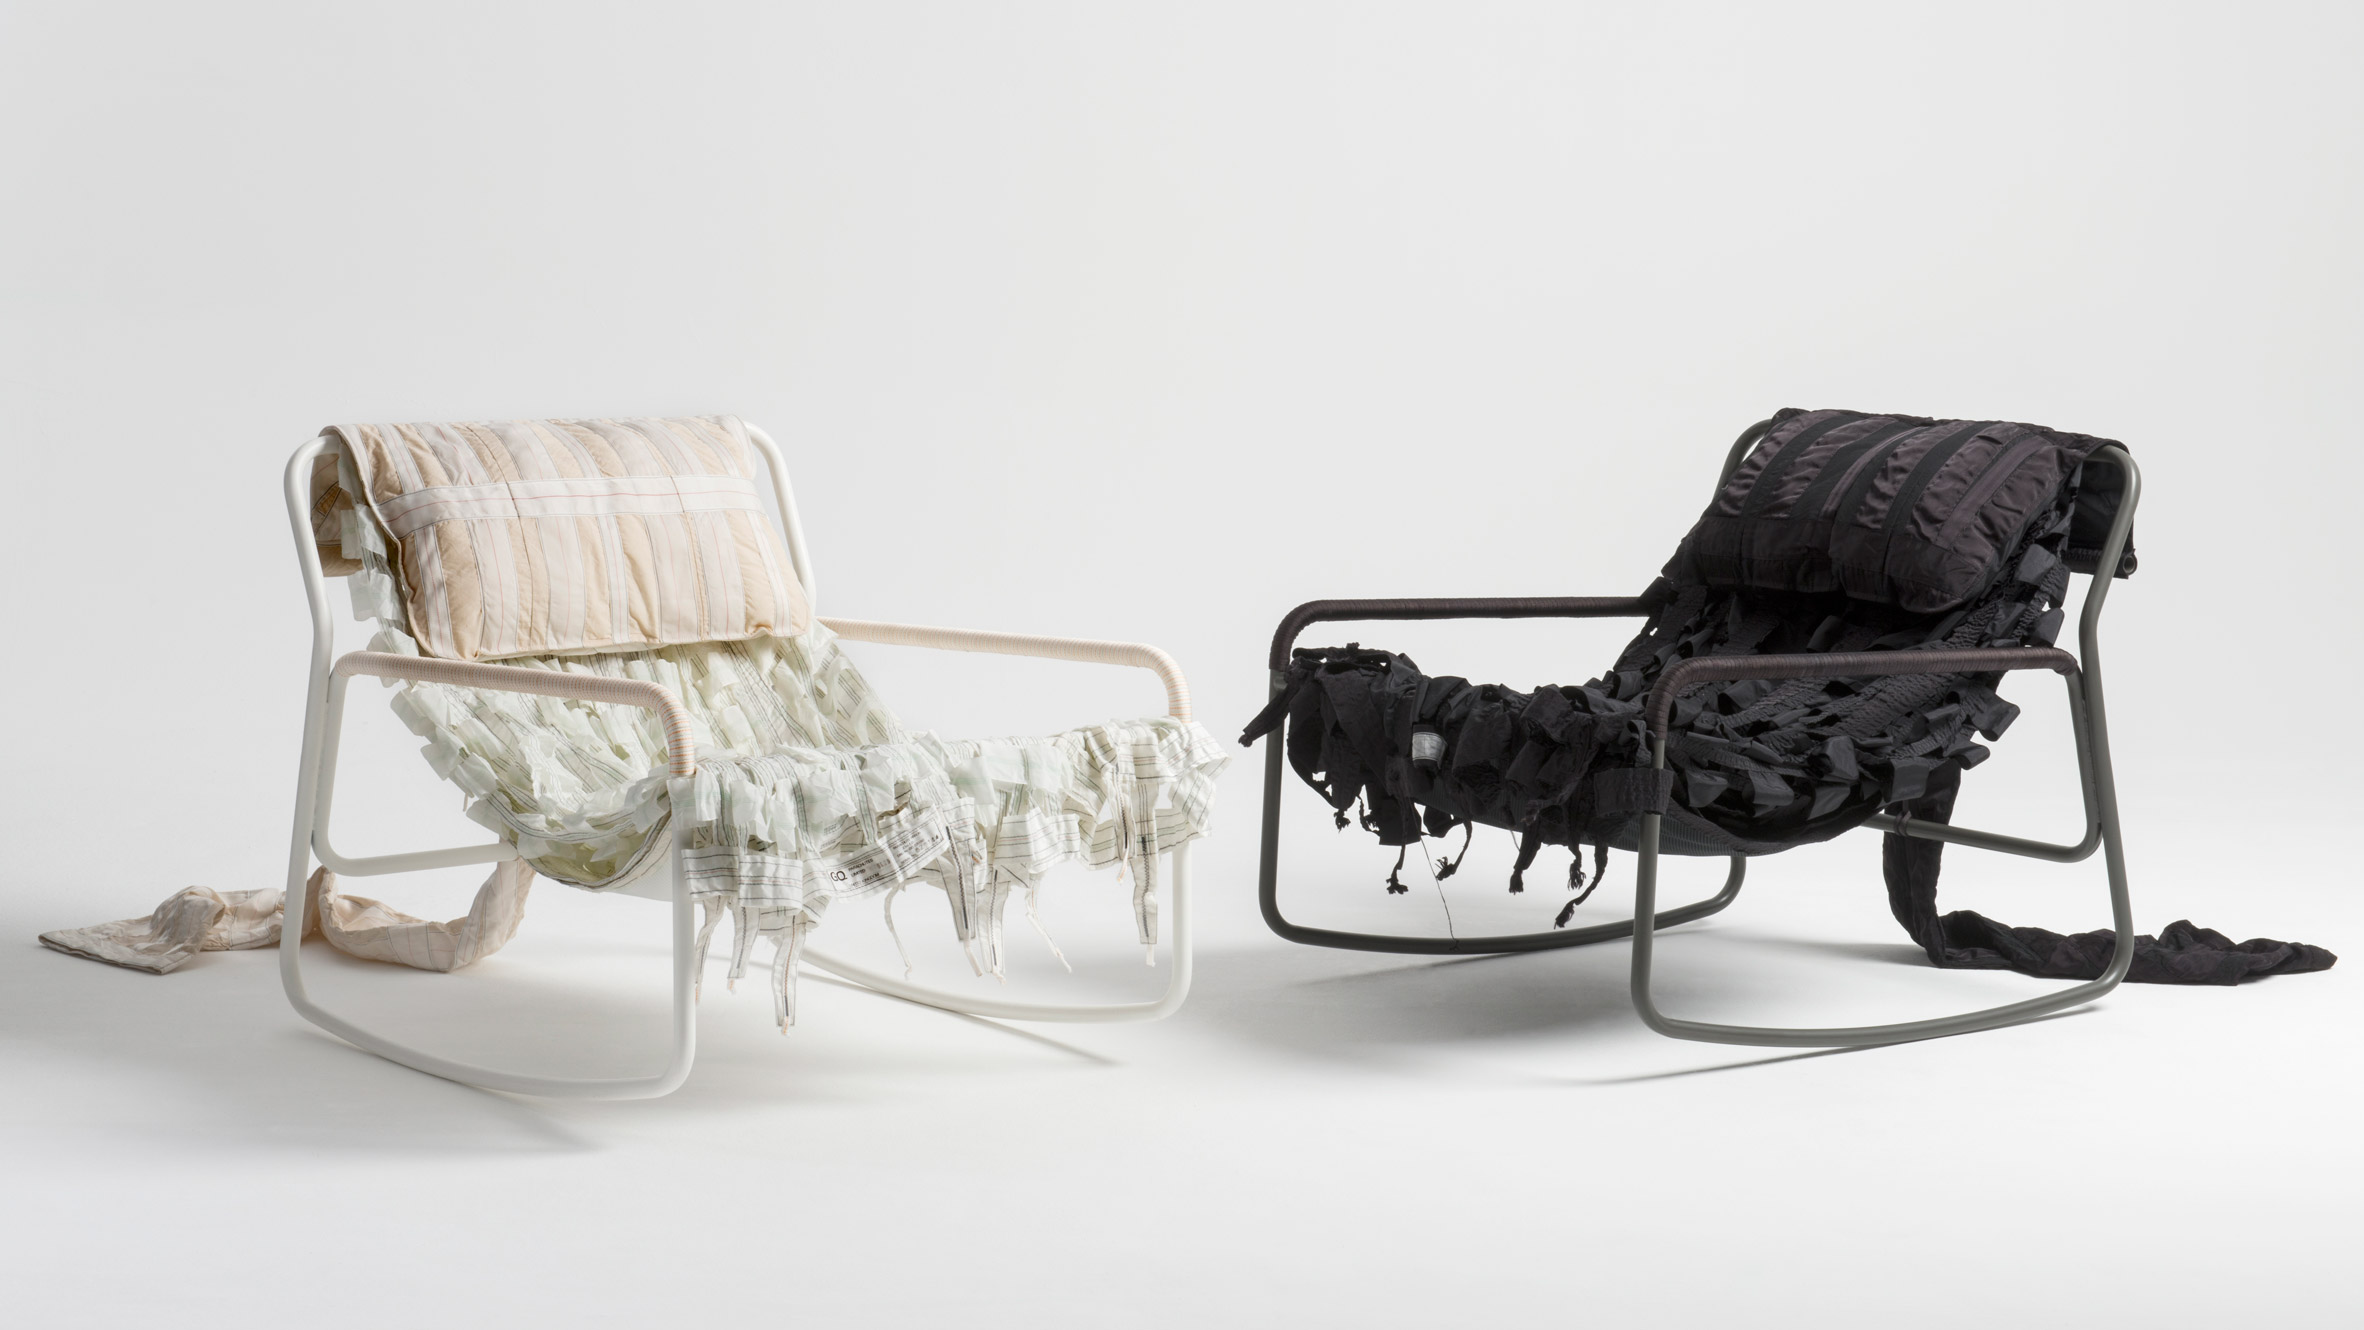 Layer And Raeburn Design Furniture Collection From Recycled